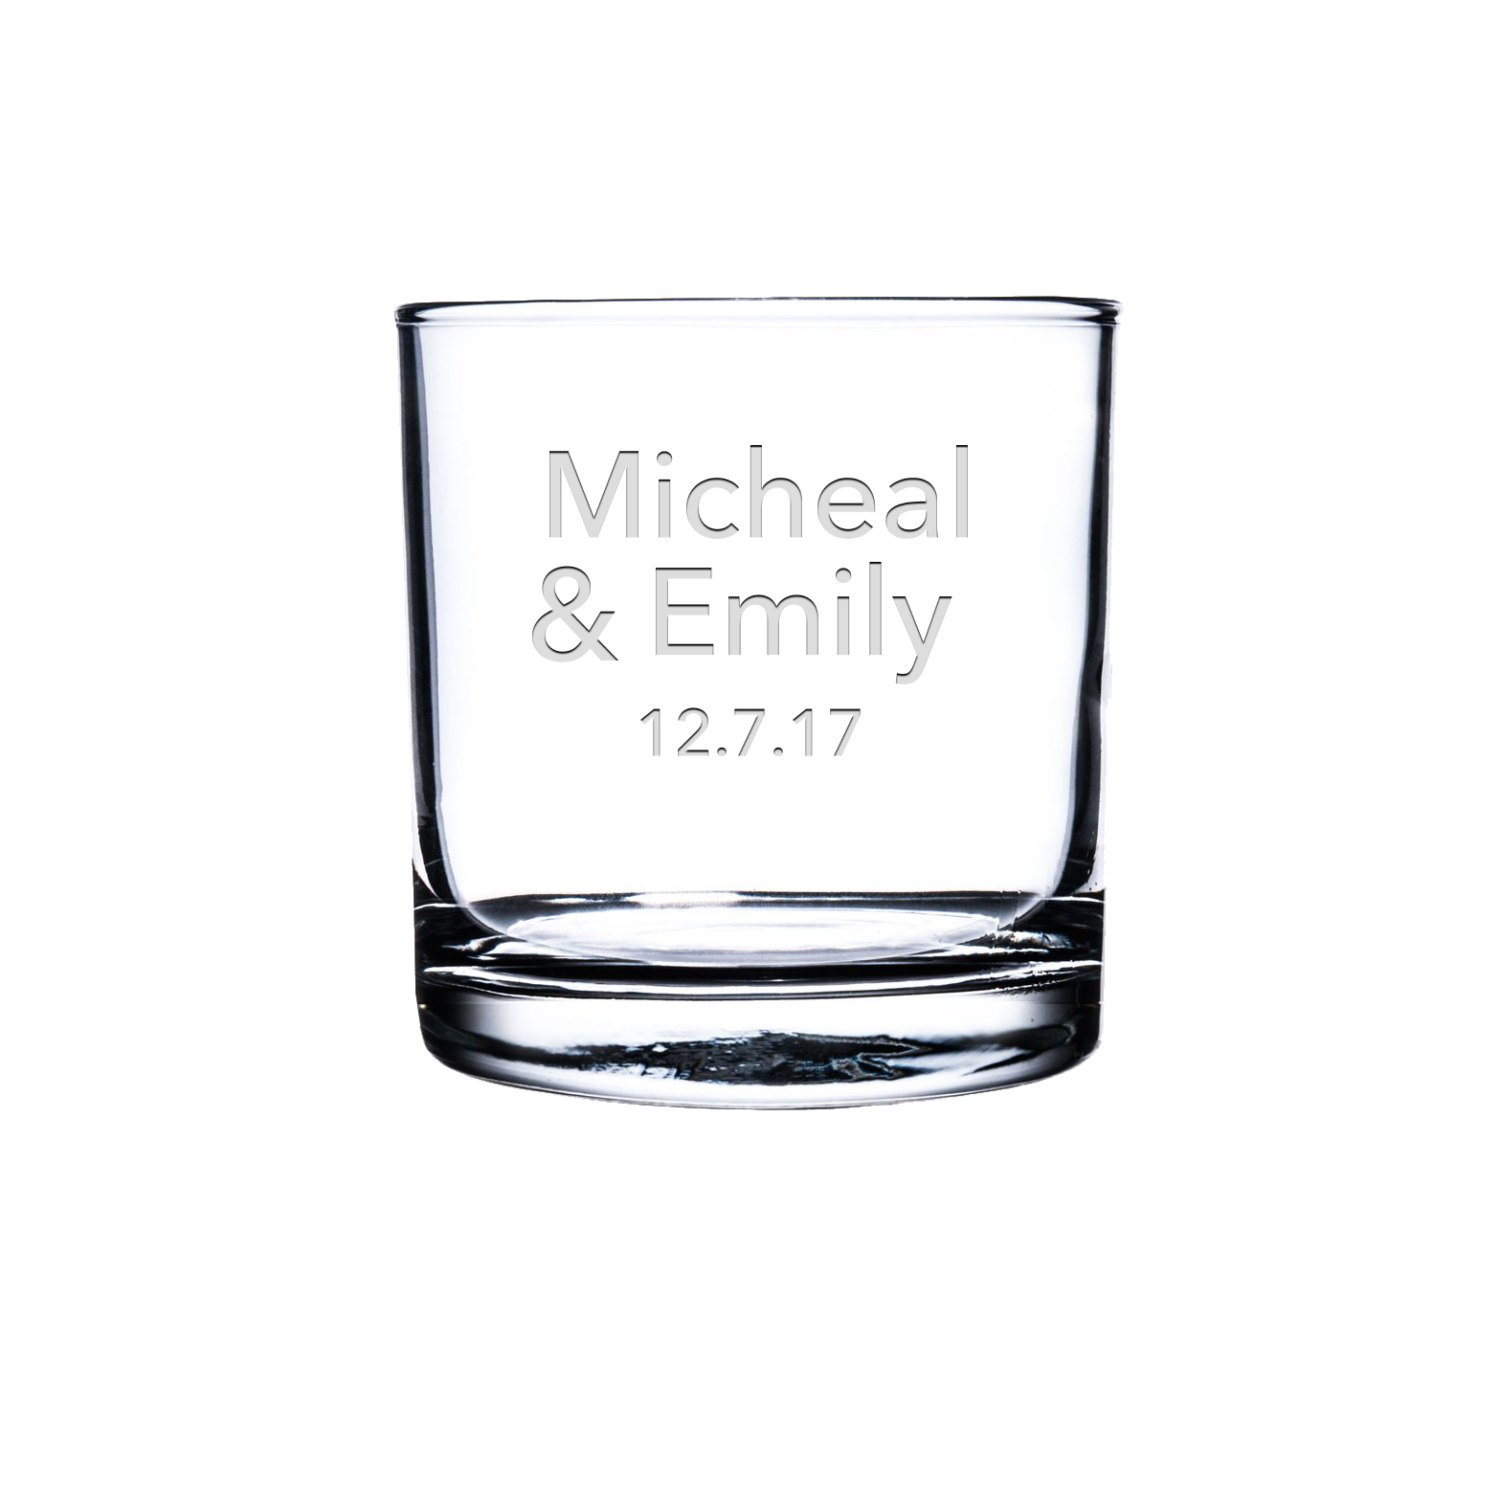 Etched Scotch Glass,Personalized Rocks Glass, Custom Whiskey Glass, Engraved Bourbon Glass, His and her initial engraved scotch Glasses Listing For Karen Sipes for 125 glass